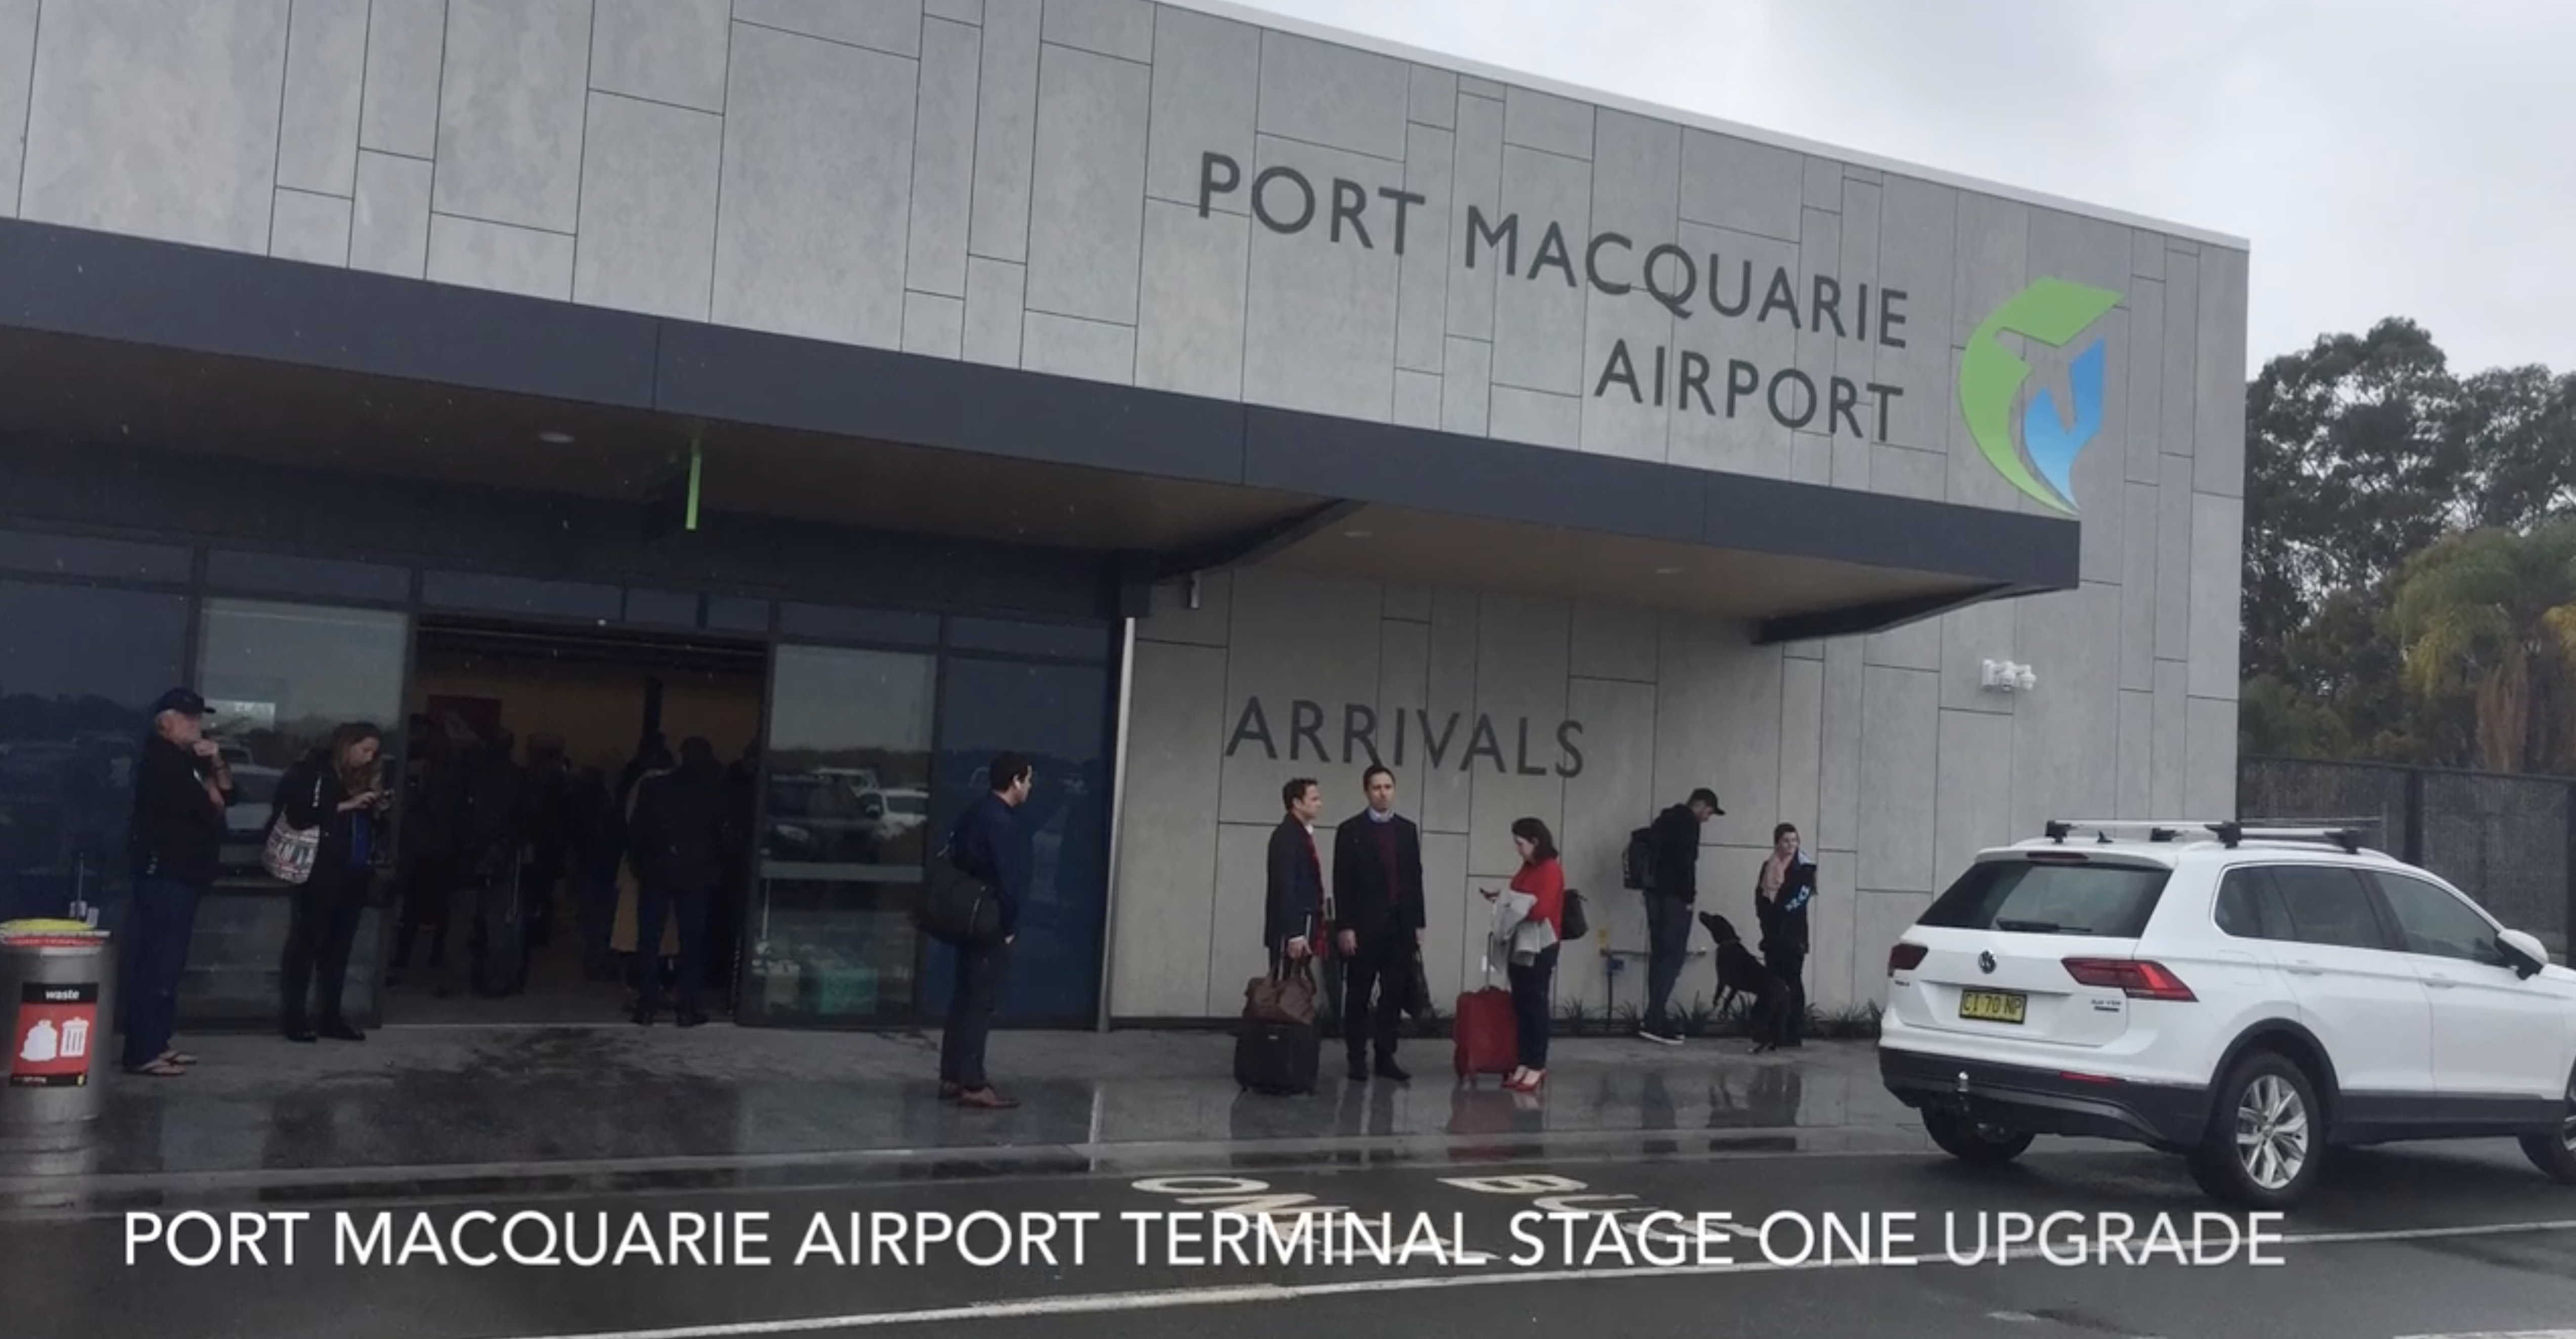 Port Macquarie Airport opens first stage of terminal upgrade